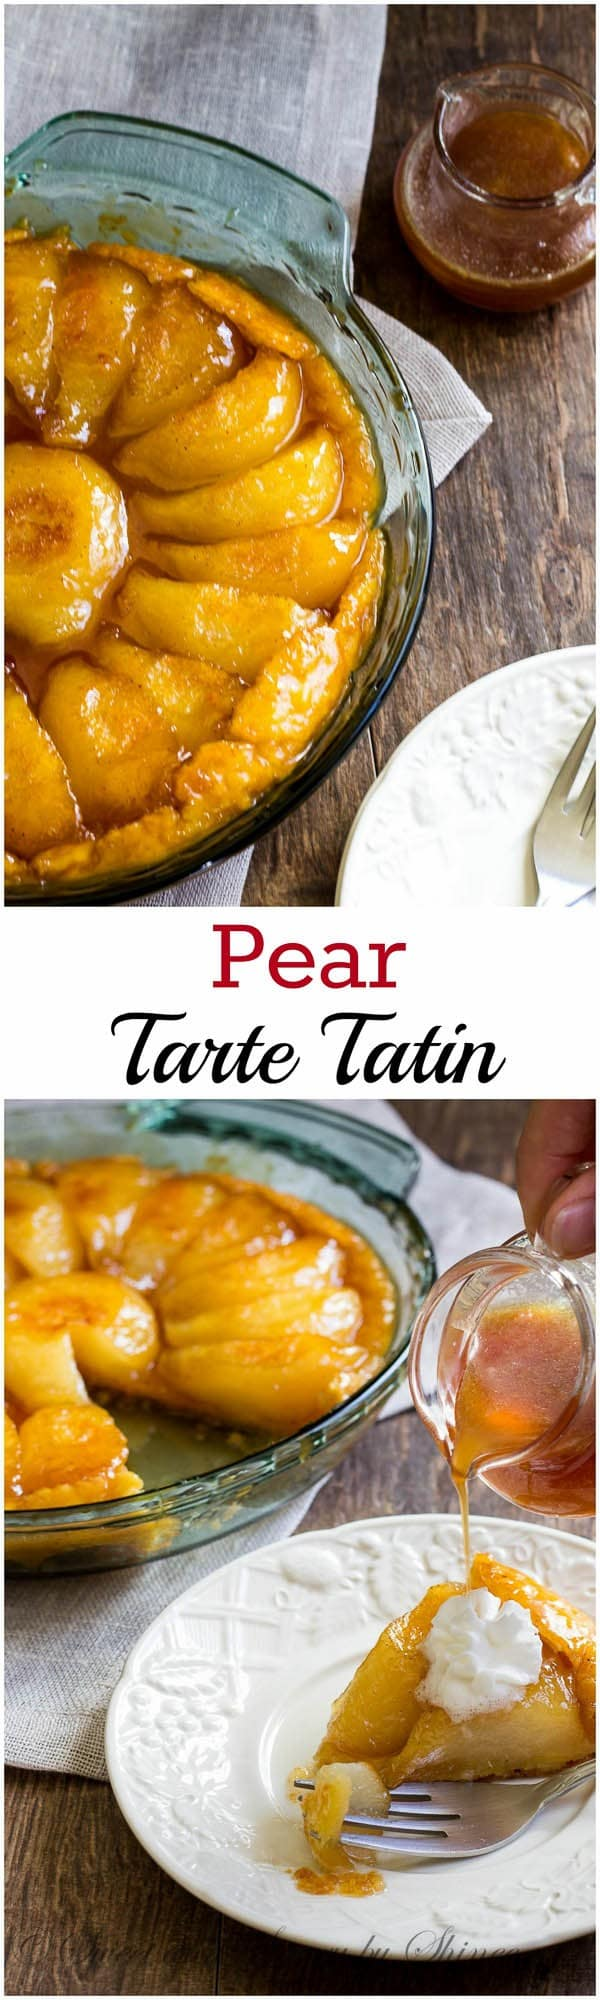 Delicate, soft pears smothered with caramelized syrup over buttery crust- simply heaven in your mouth!